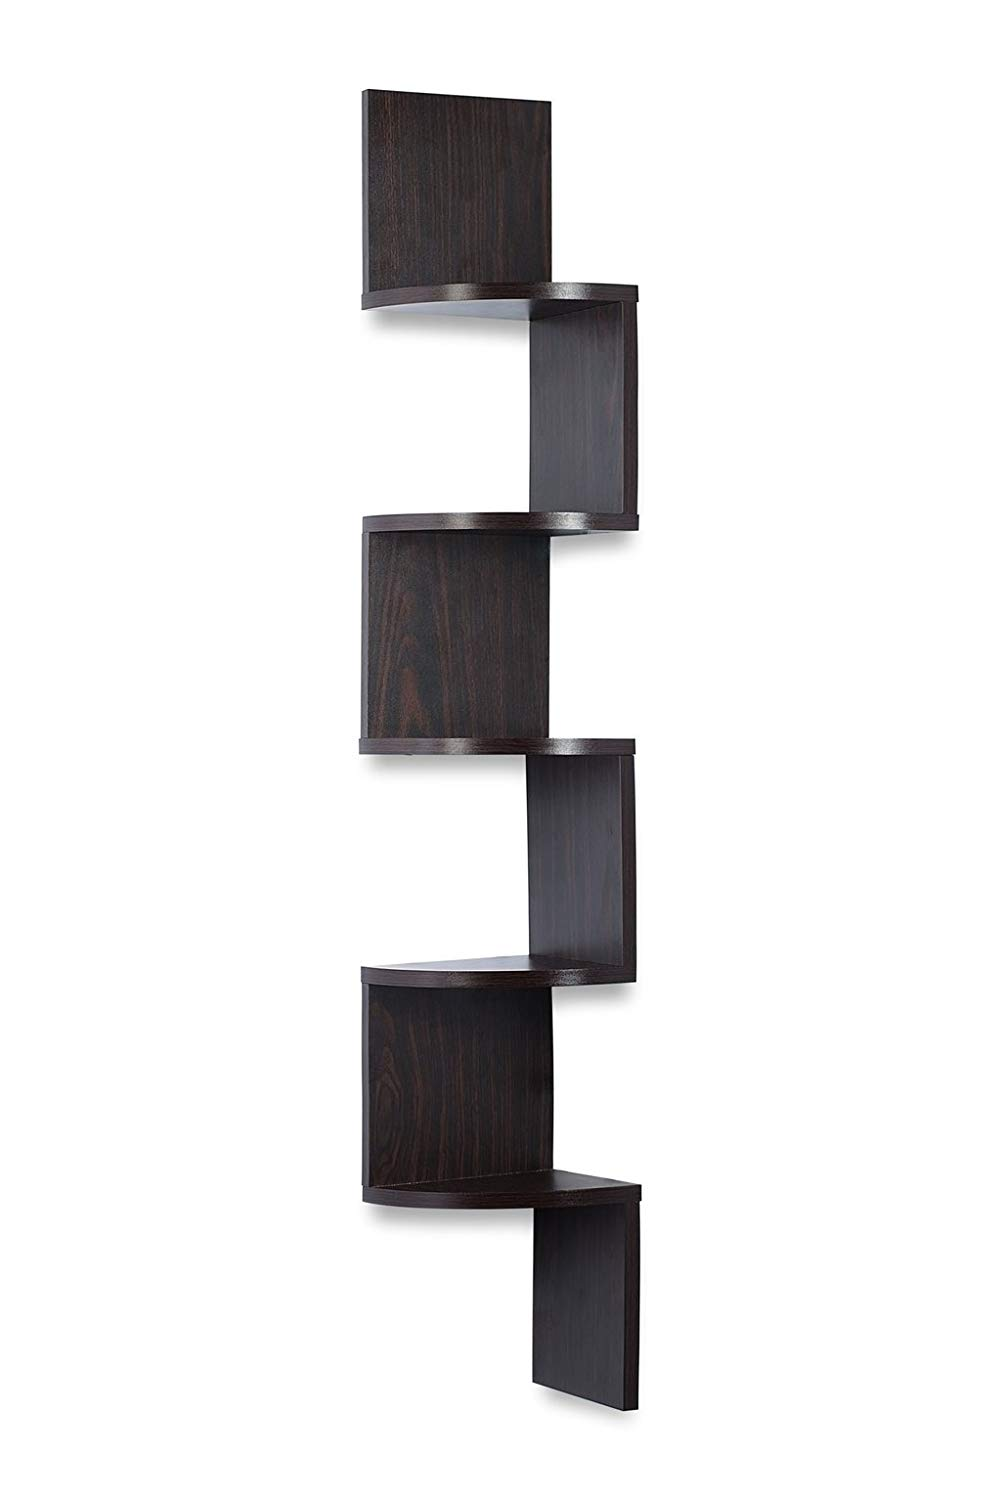 corner shelf espresso finish unit extra large floating tier shelves can used for bookshelf any decor sagler home rack books designs free sink cool diy adirondack bar stools black